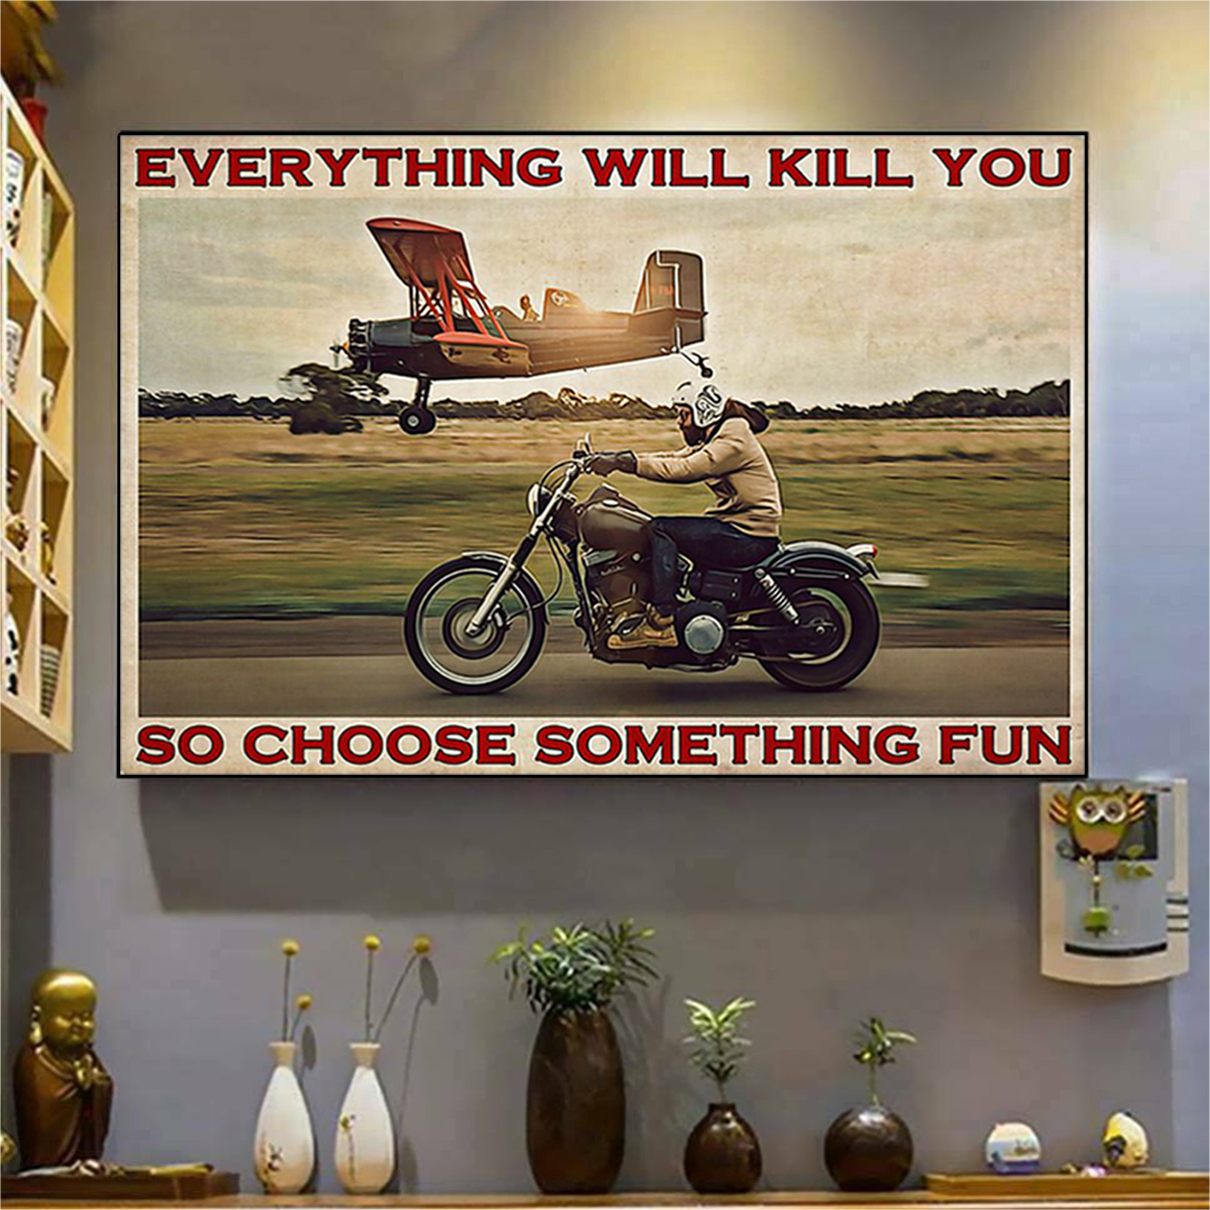 Motorbike planes everything will kill you so choose something fun poster A3